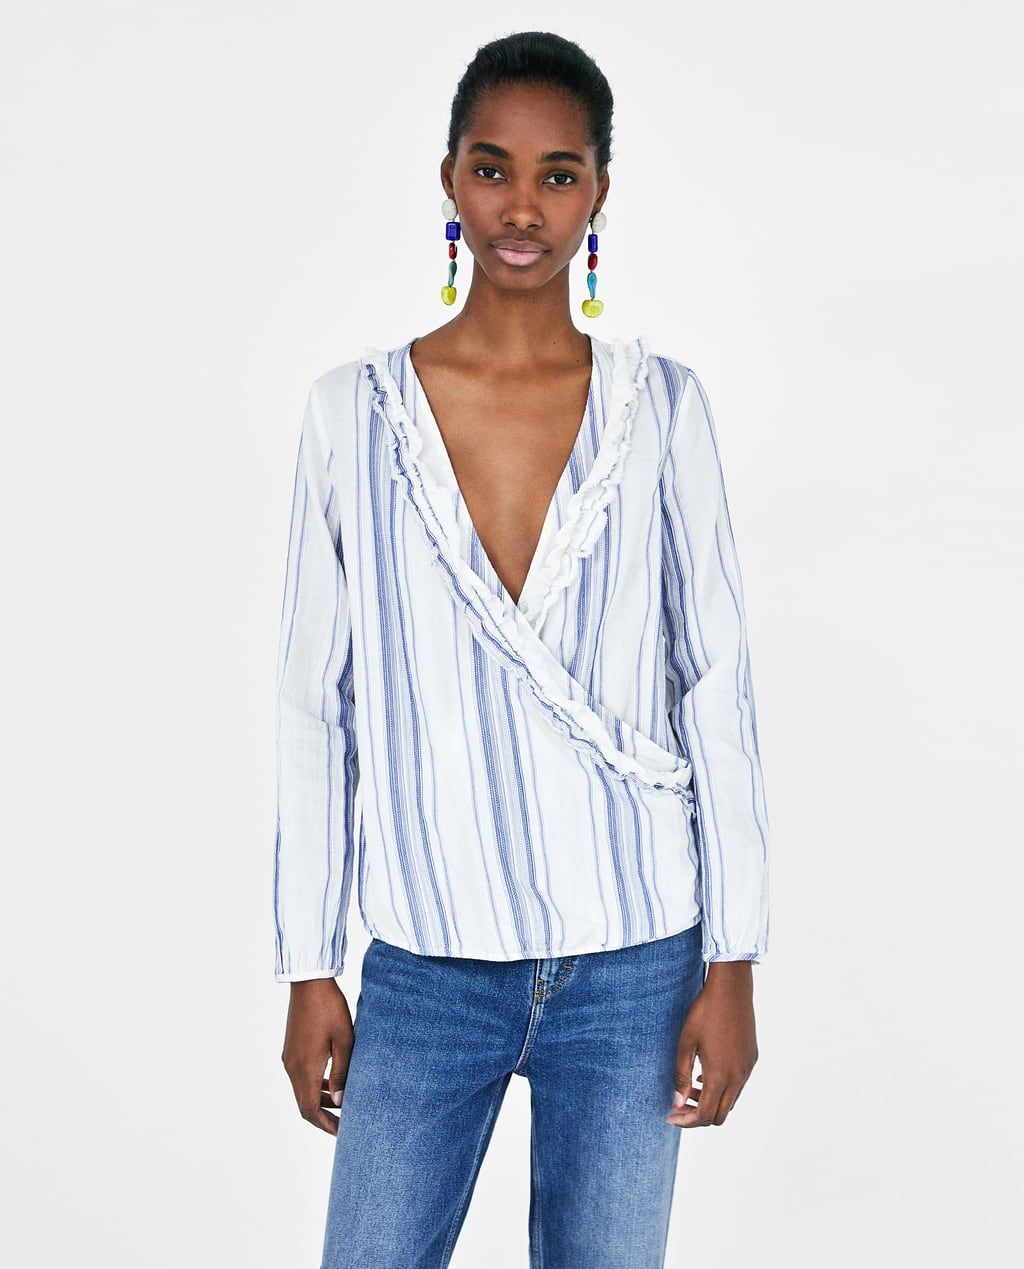 0f7927e8 STRIPED BLOUSE WITH RUFFLES from Zara | Striped | Style Inspiration ...